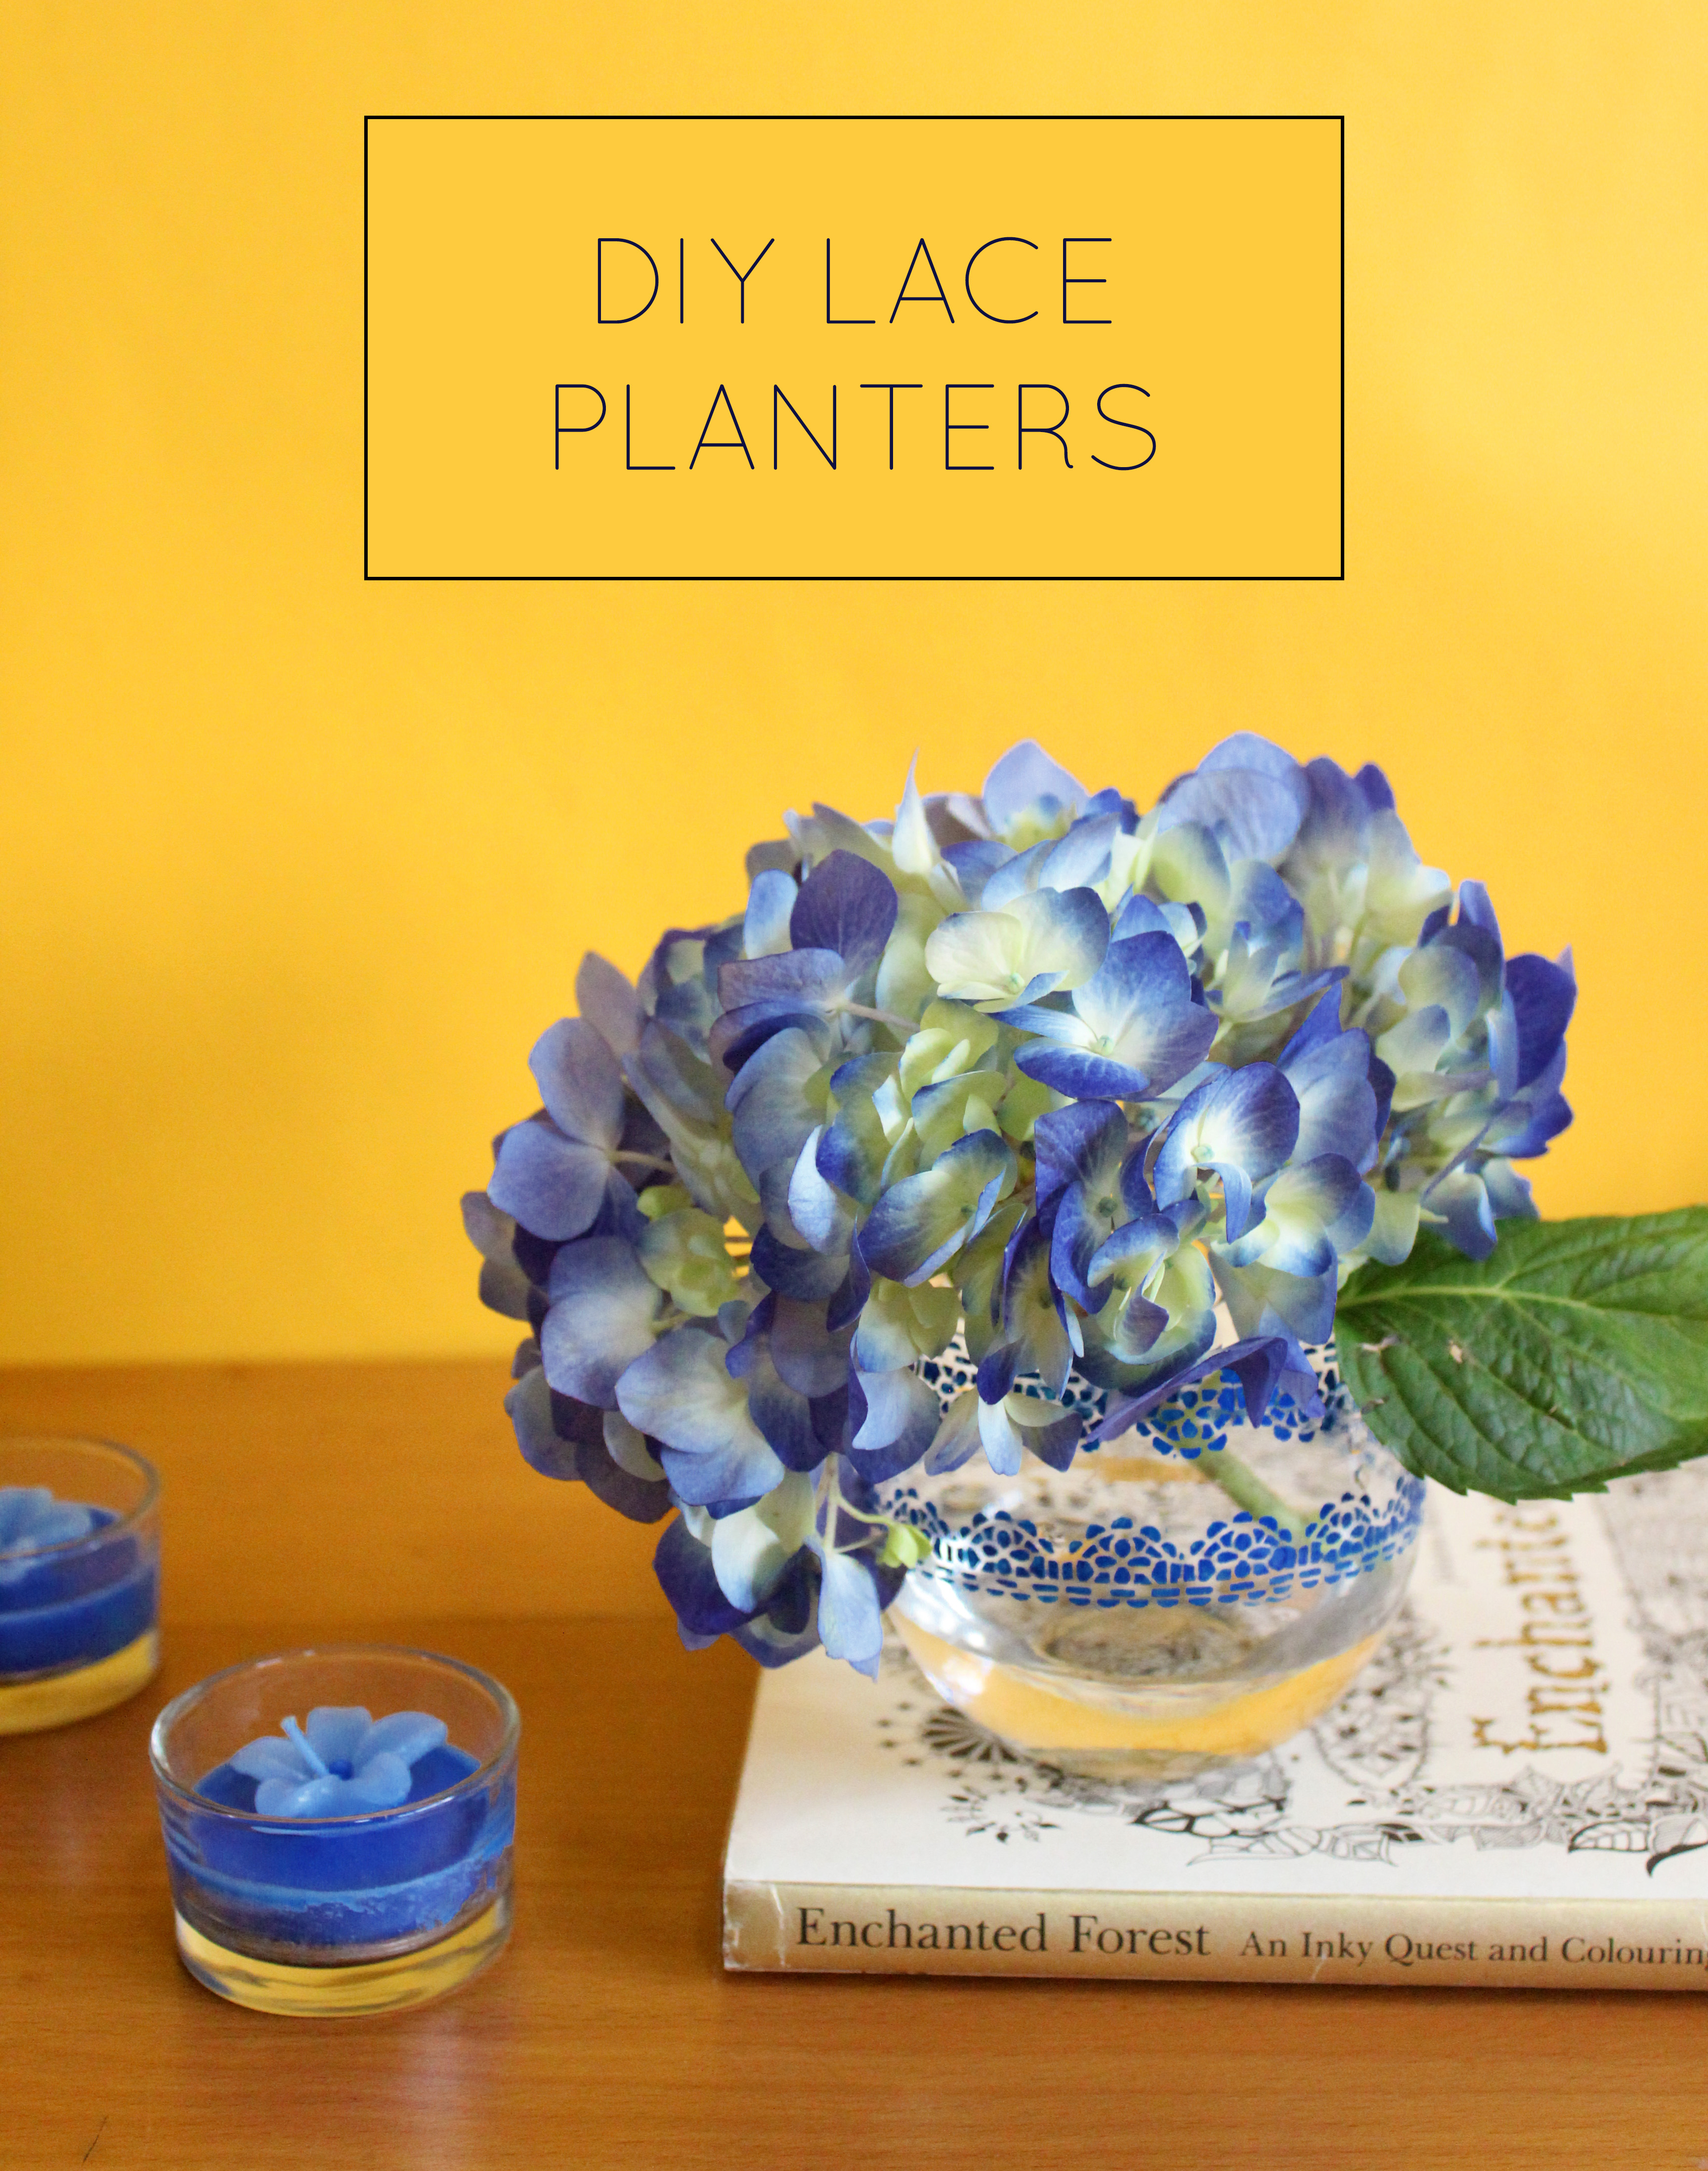 How to make DIY Lace Planters